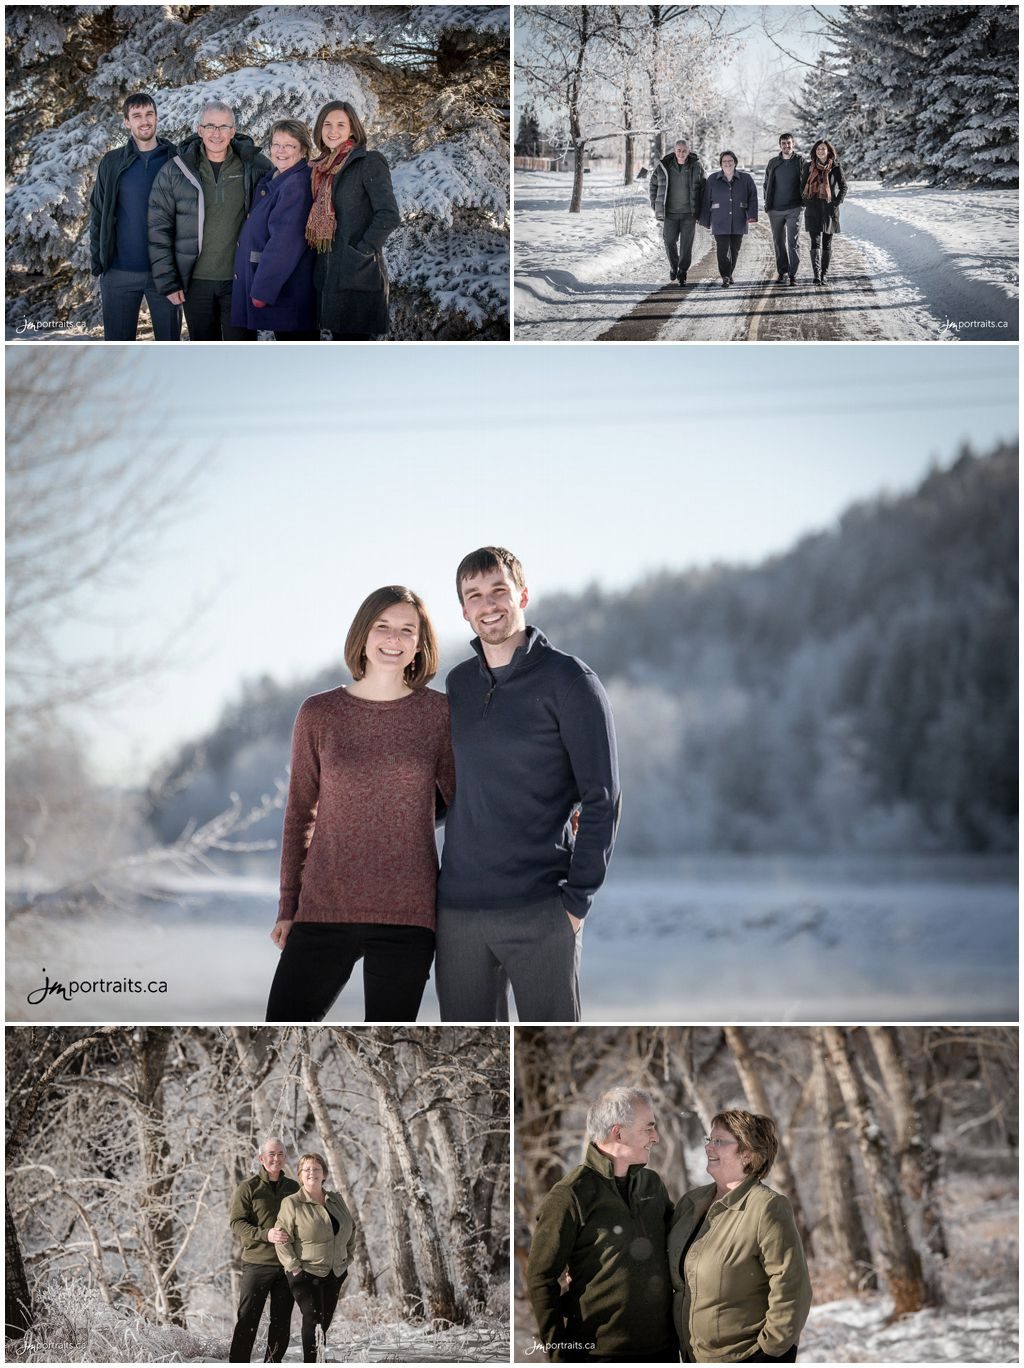 160109_2-Calgary-Family-Photographers-JM_Photography-Amy-Cheng